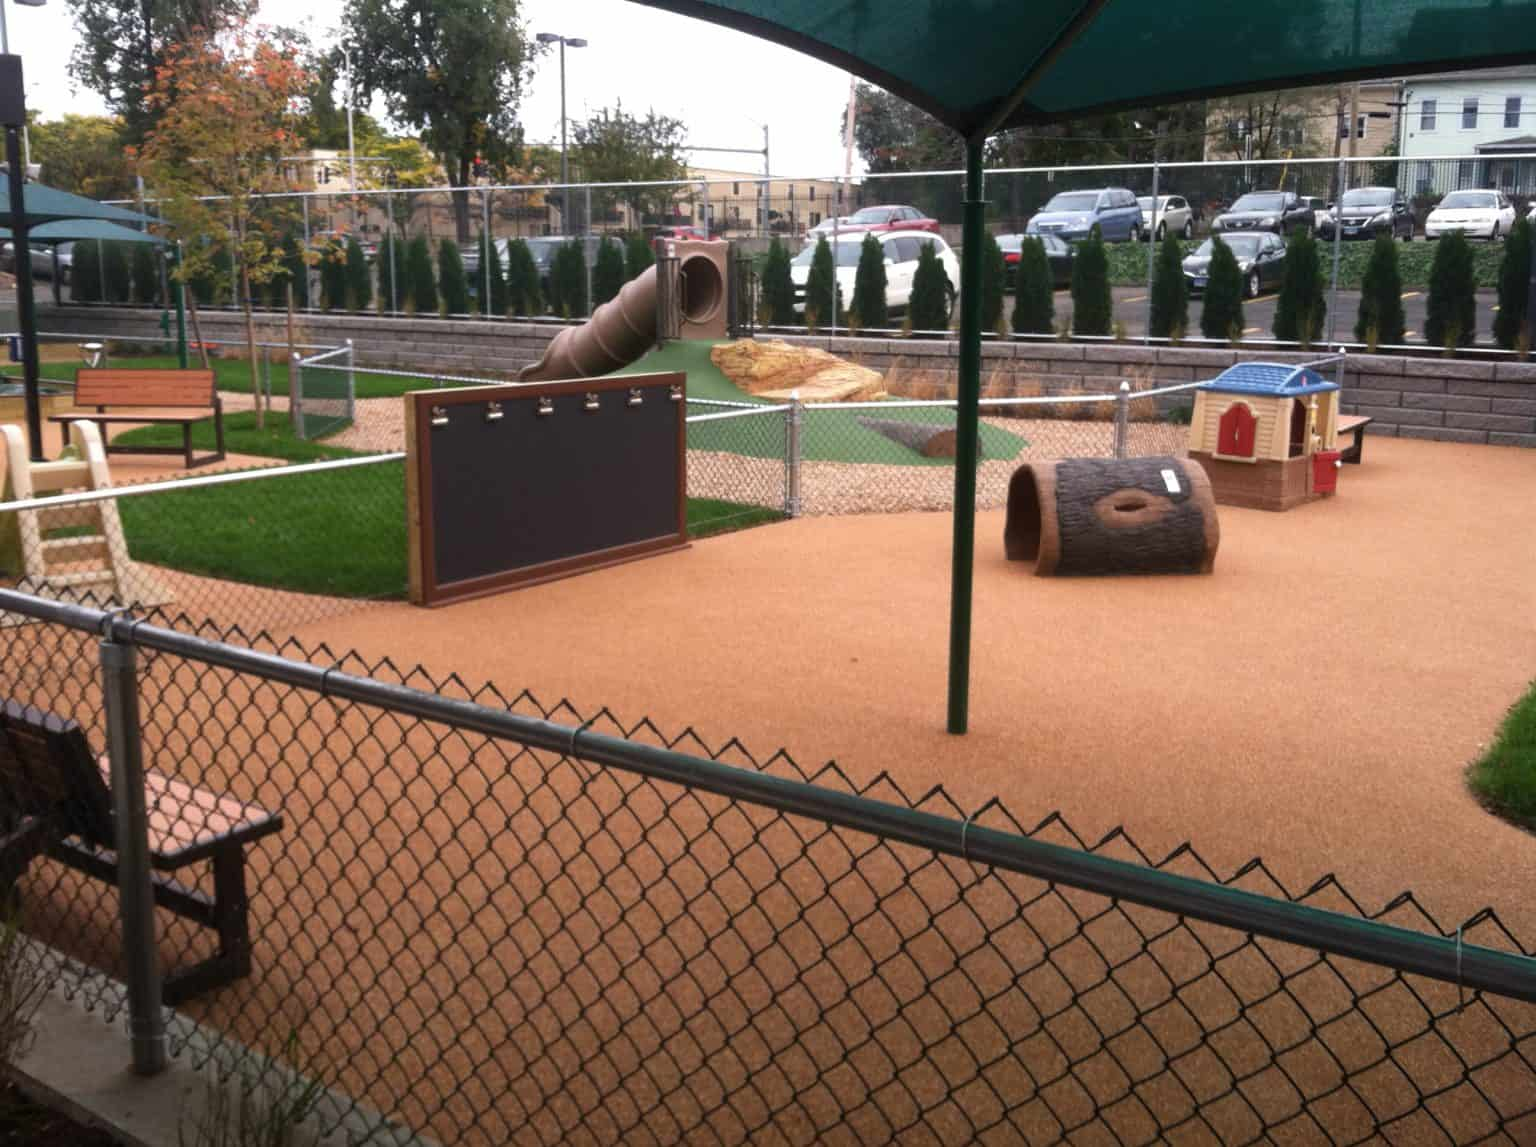 phyllis-bodel-daycare-playground-new-haven-ct_17941335889_o-1536x1147